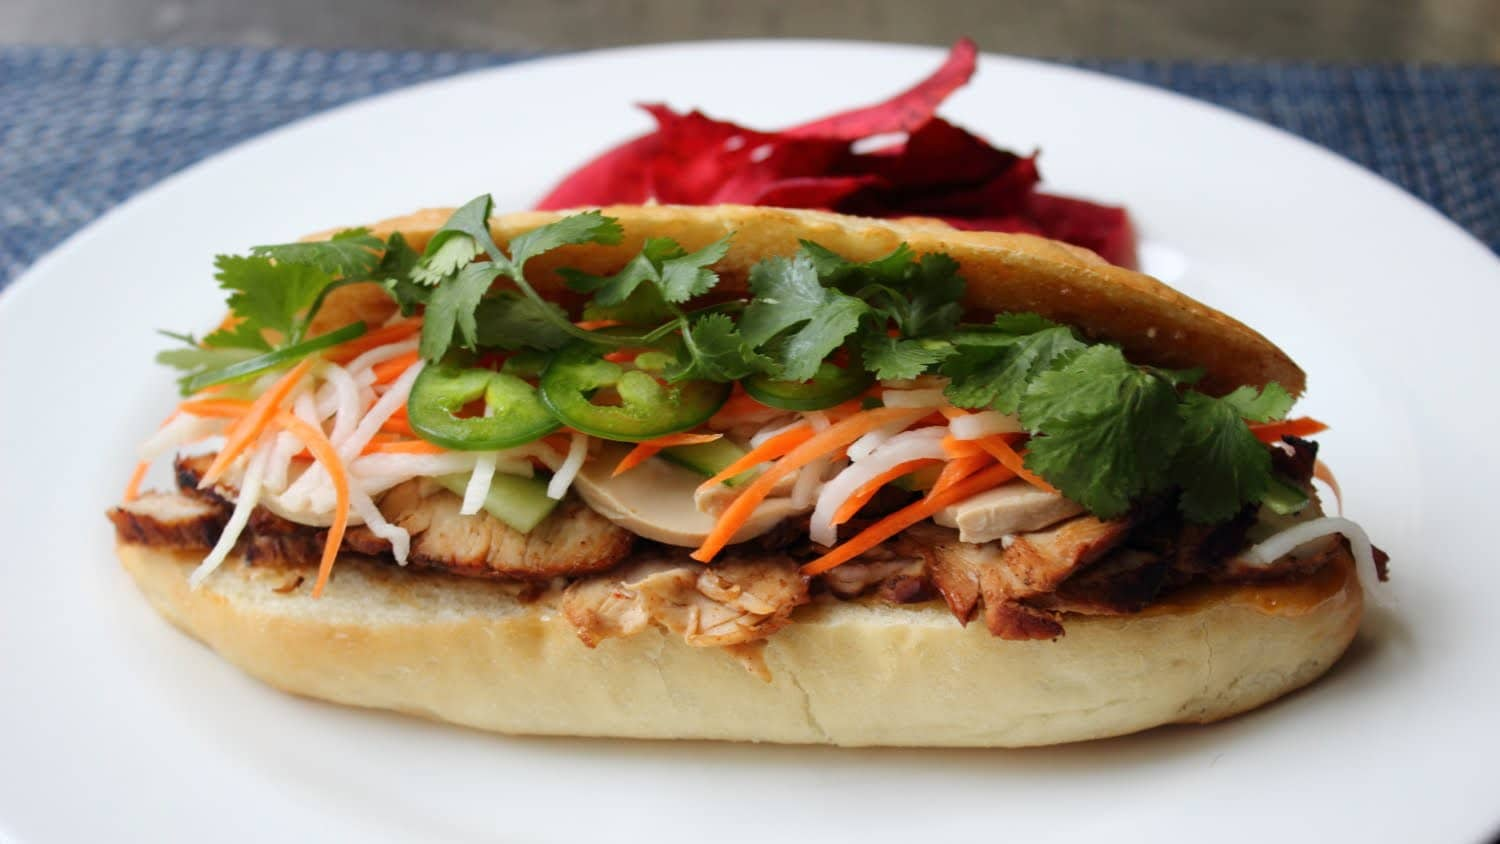 Banh Mi -   Cost $1.00 -  Bánh mì is the Vietnamese word for bread. Bread, or more specifically the baguette, was introduced by the French during the colonial period in Vietnam. These baguettes are usually stuffed with a Pâté, vegetables and an egg. You can find these literally everywhere, anytime of the day for around 0.60 USD.